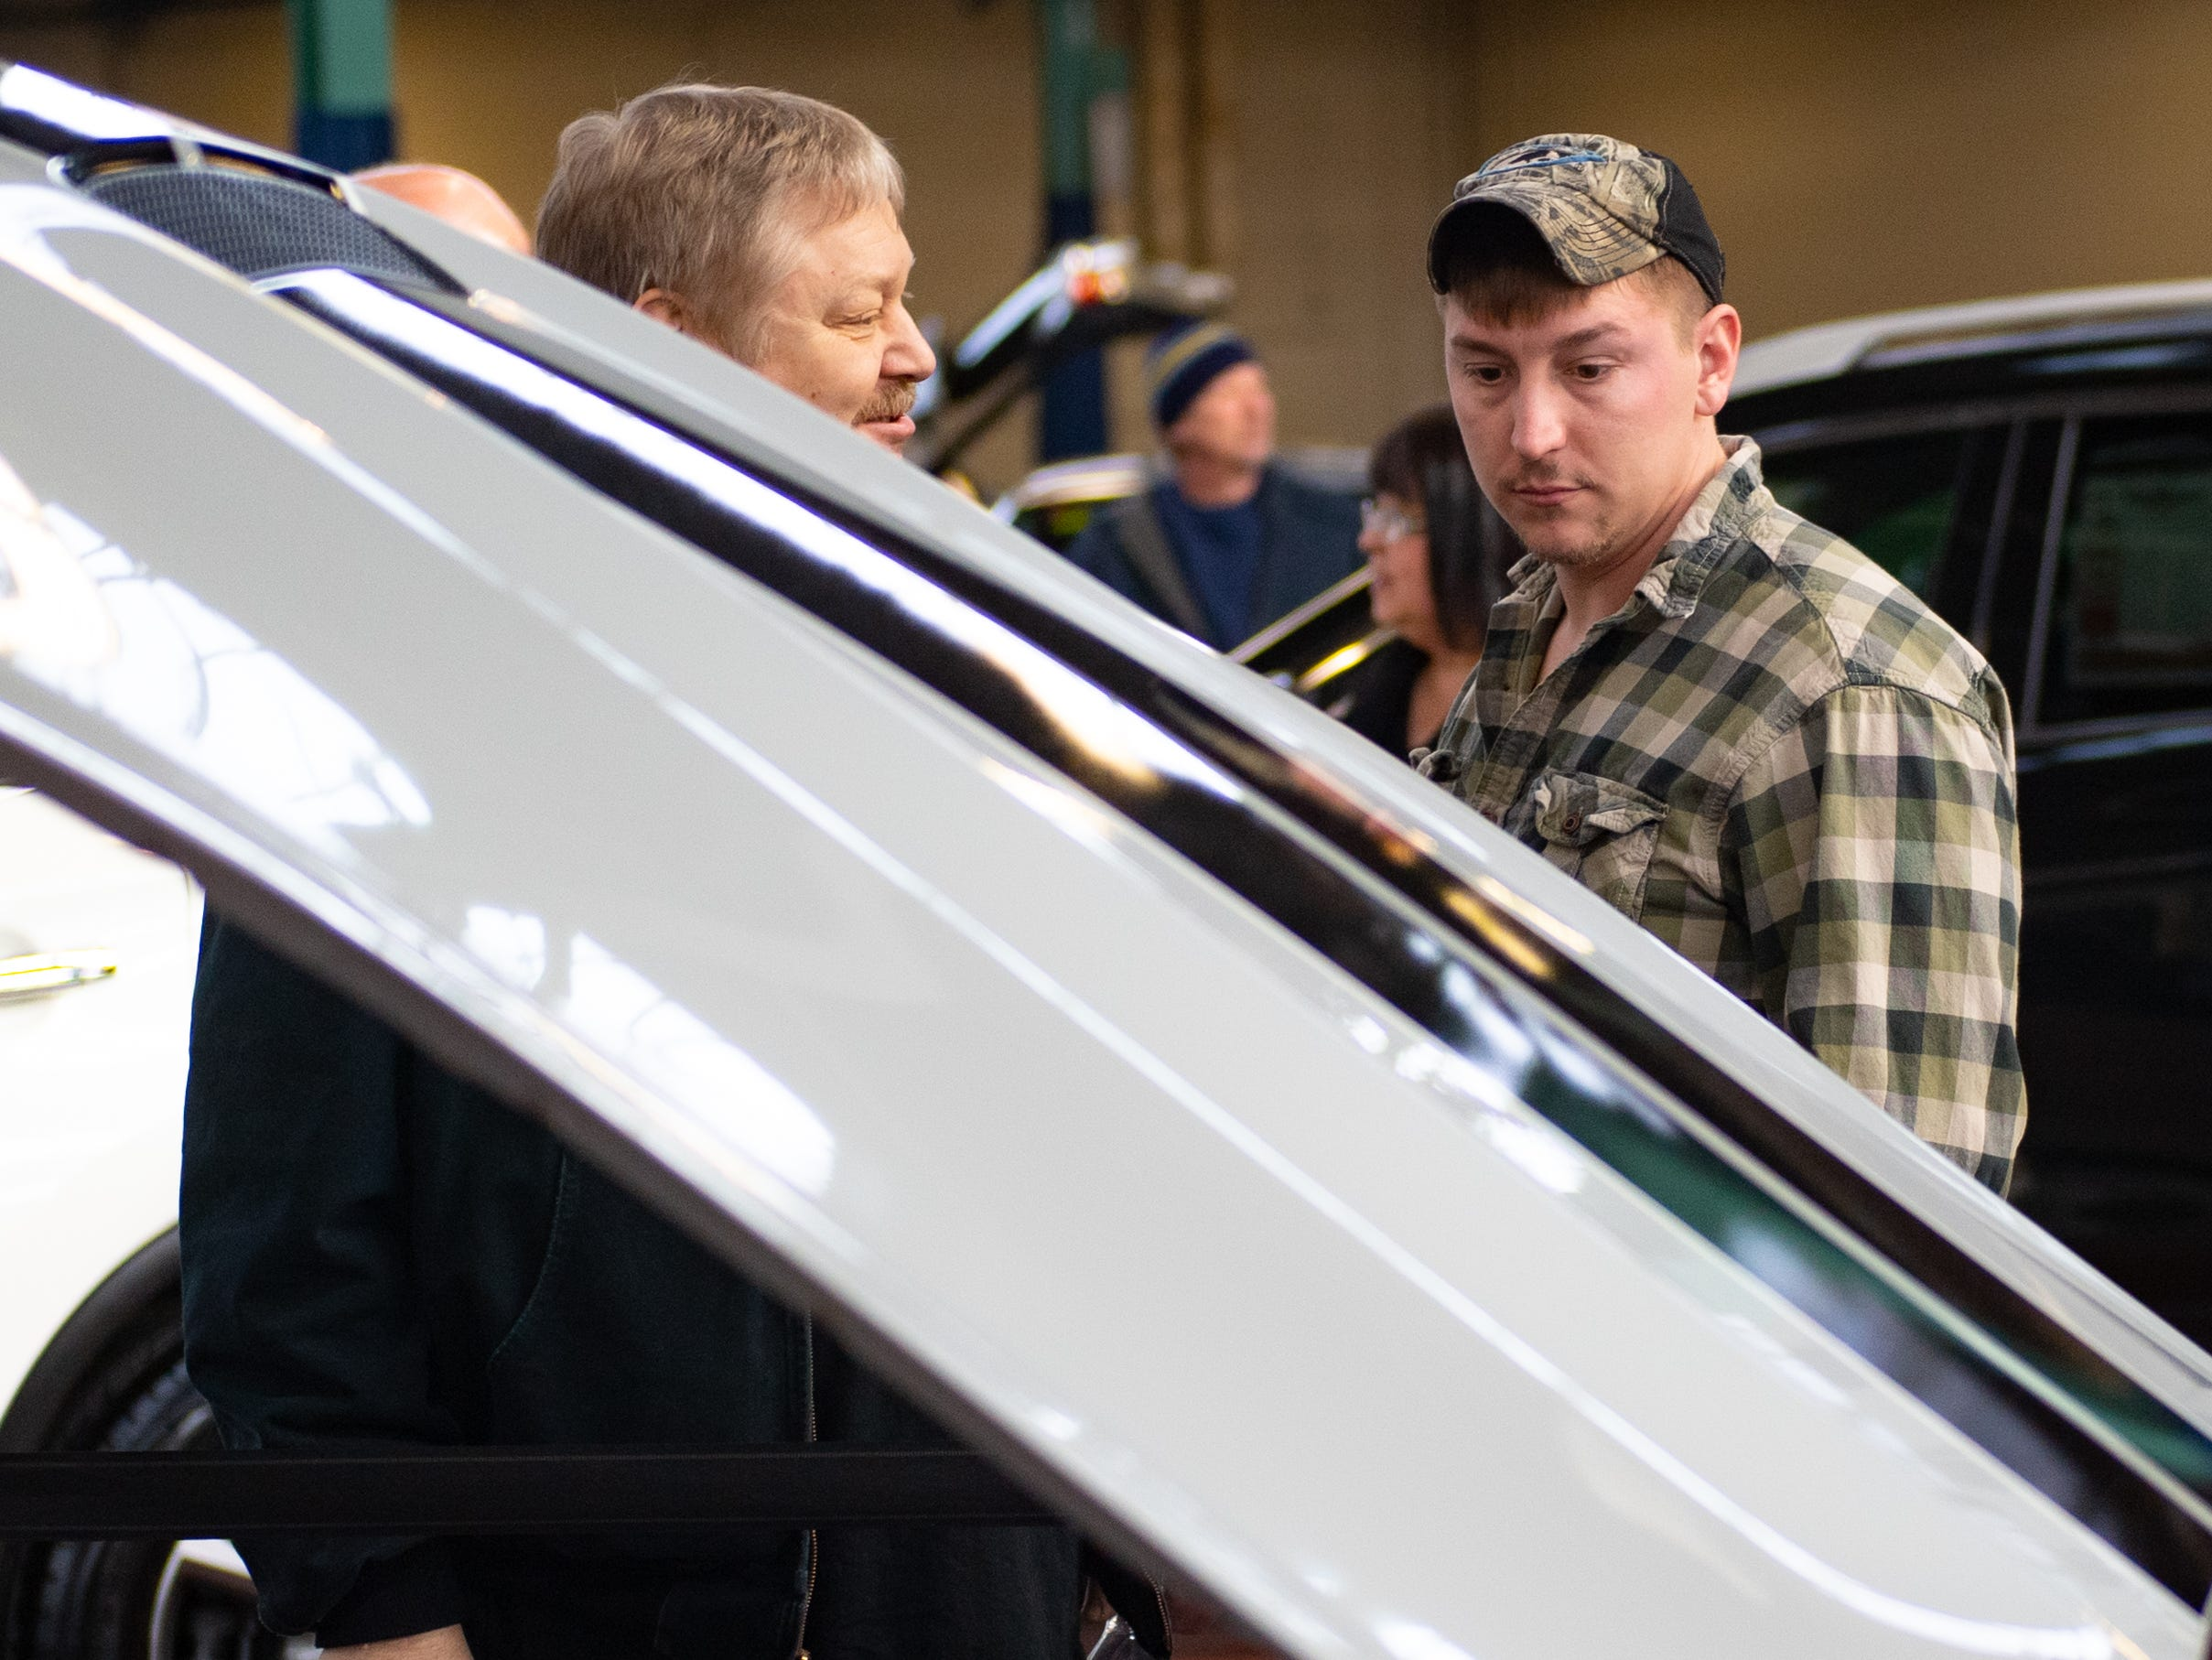 Exhibitors check out the hundreds of cars on display during the 2019 Pennsylvania Auto Show, Saturday, January 26, 2019 at the Pennsylvania Farm Show Complex & Expo Center. The auto show continues on Sunday from 10 a.m. to 5 p.m.